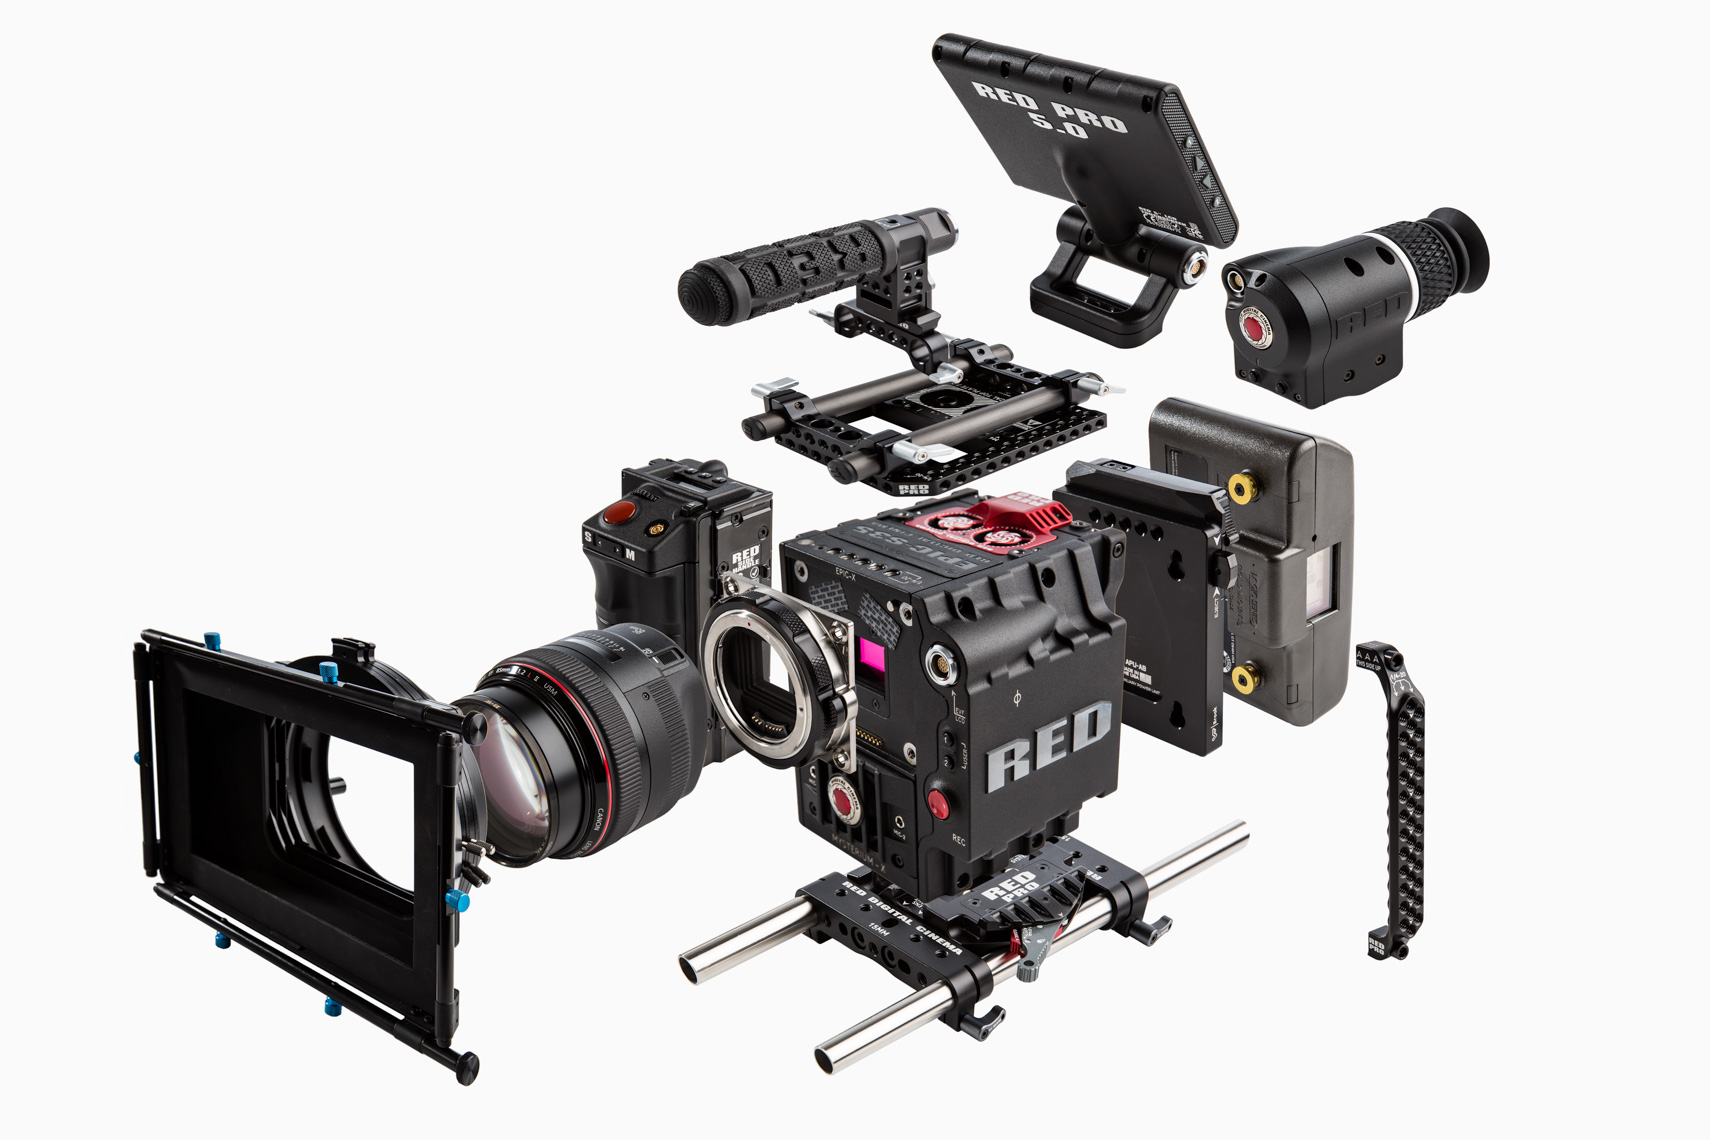 Red-Epic-San-Francisco-Oakland-Product-Photographer-7956